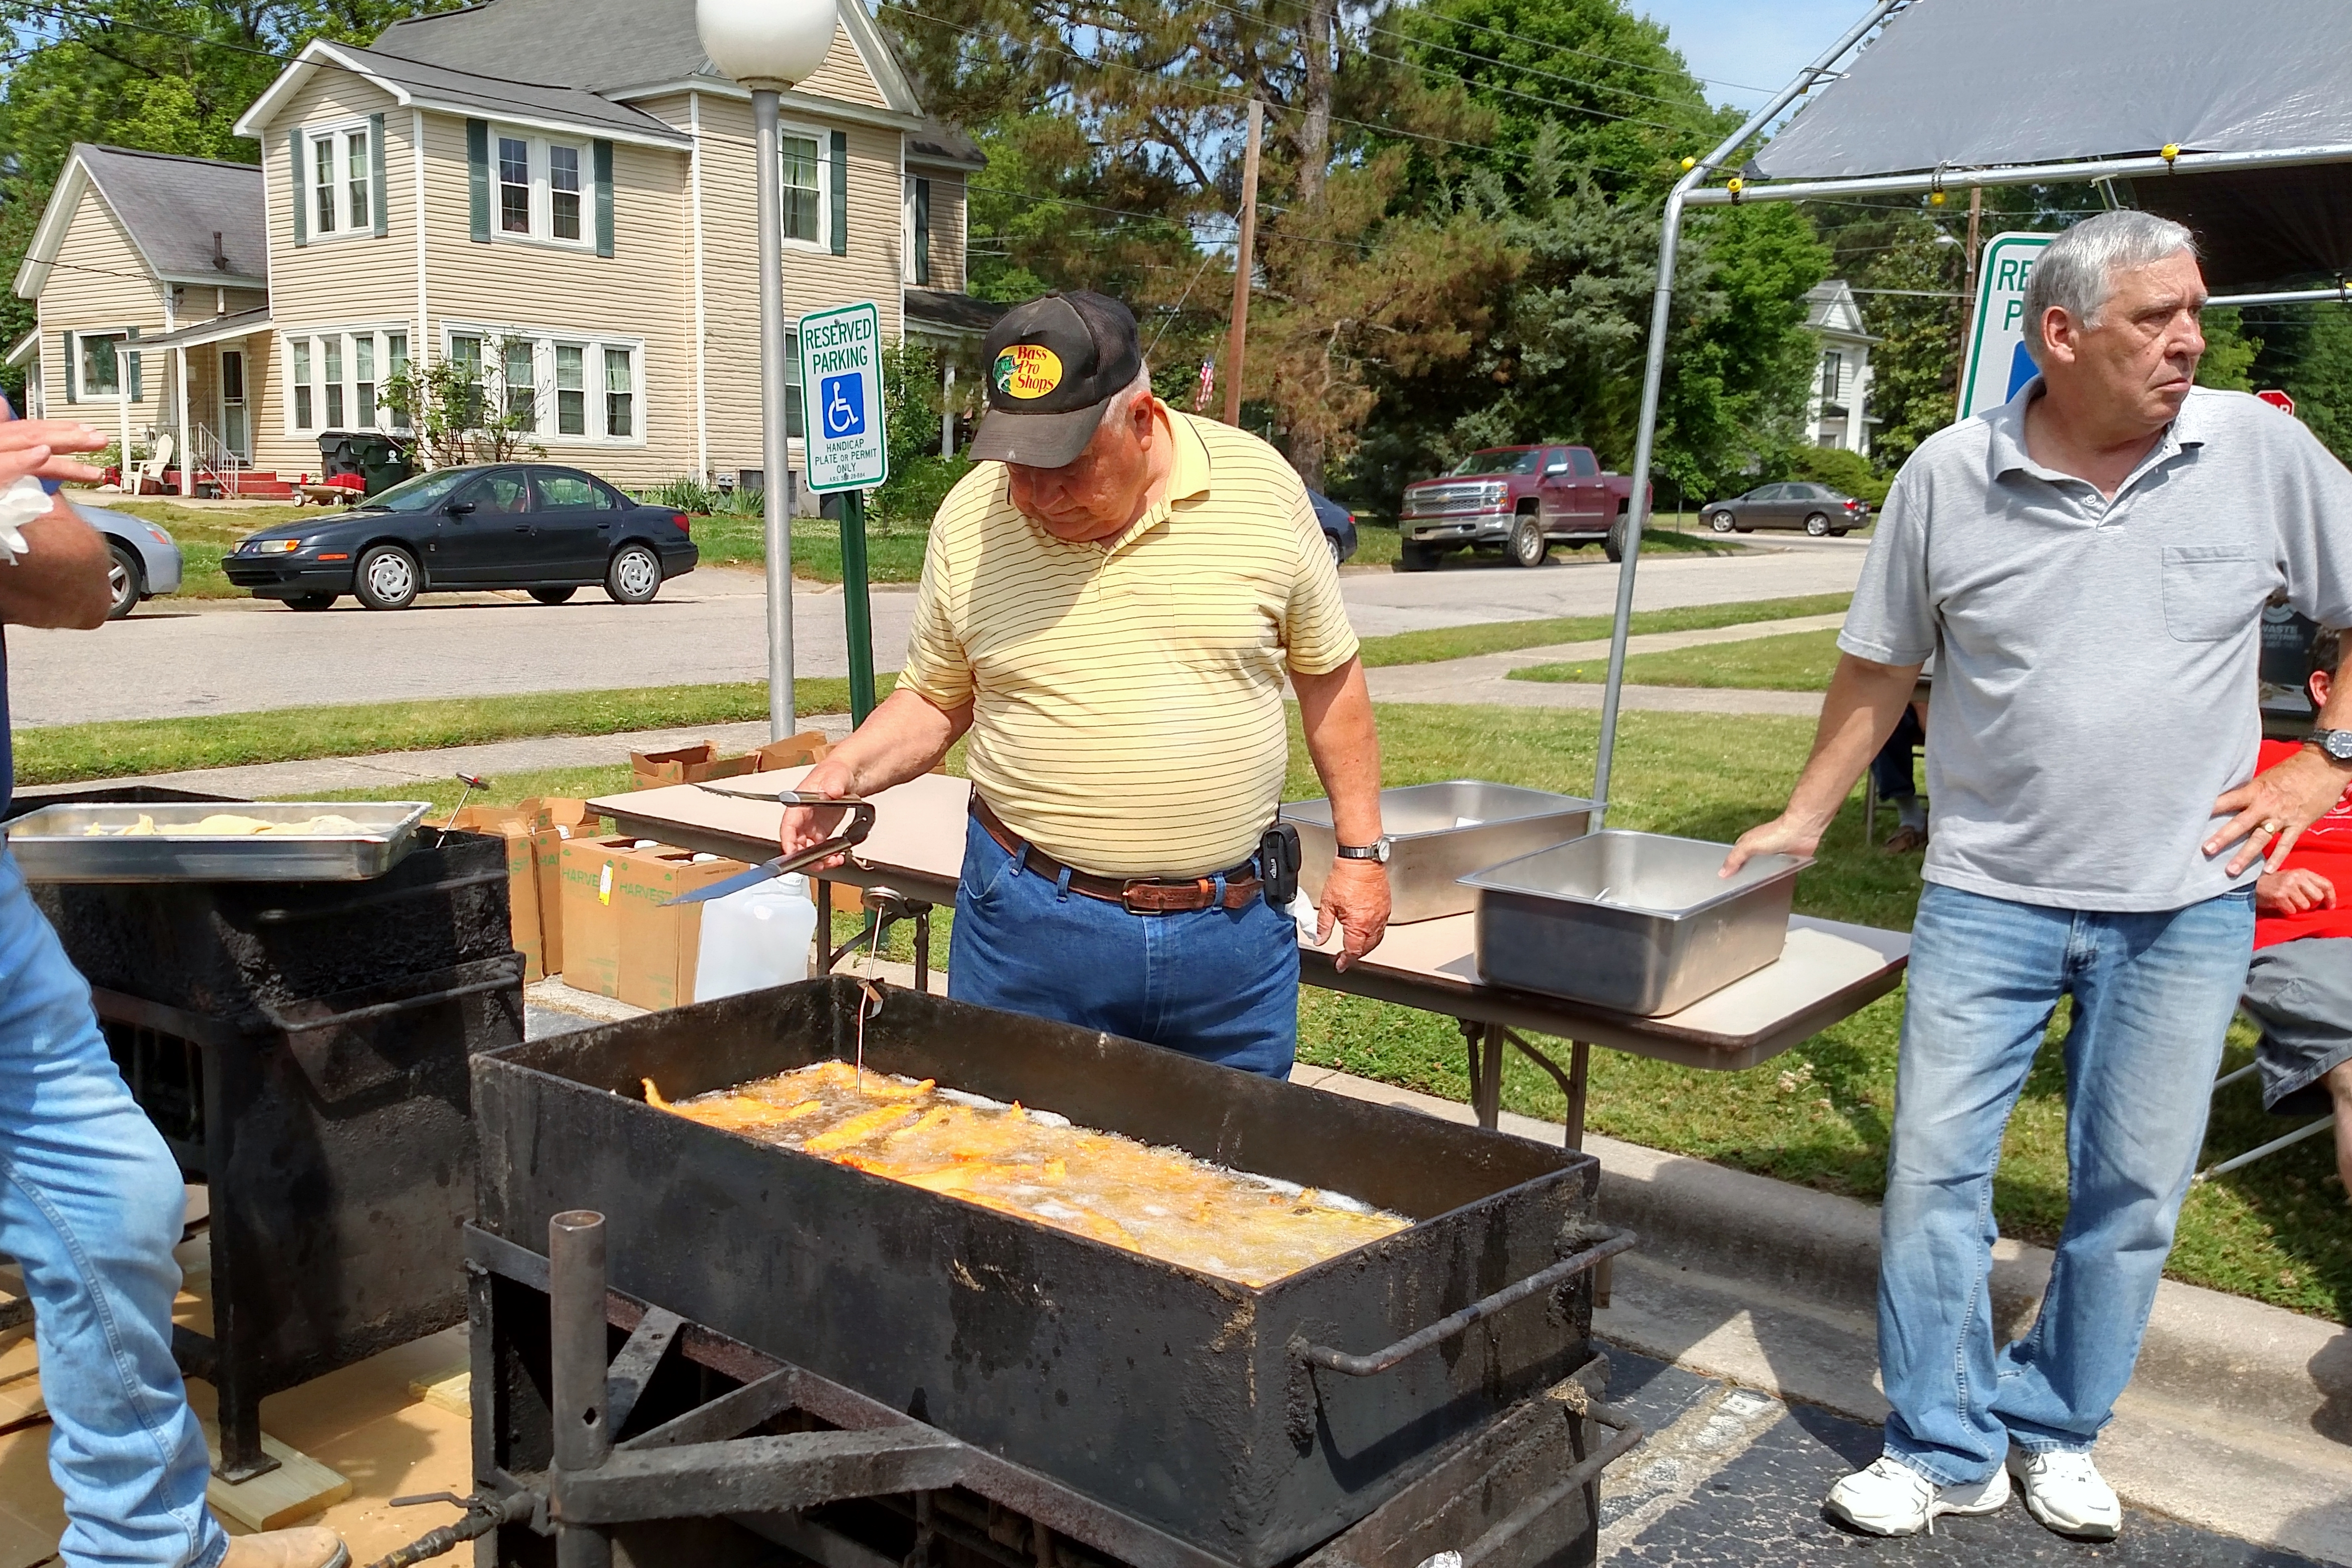 United methodist men fish fry in 2015 source zebulon for Fish fry in my area